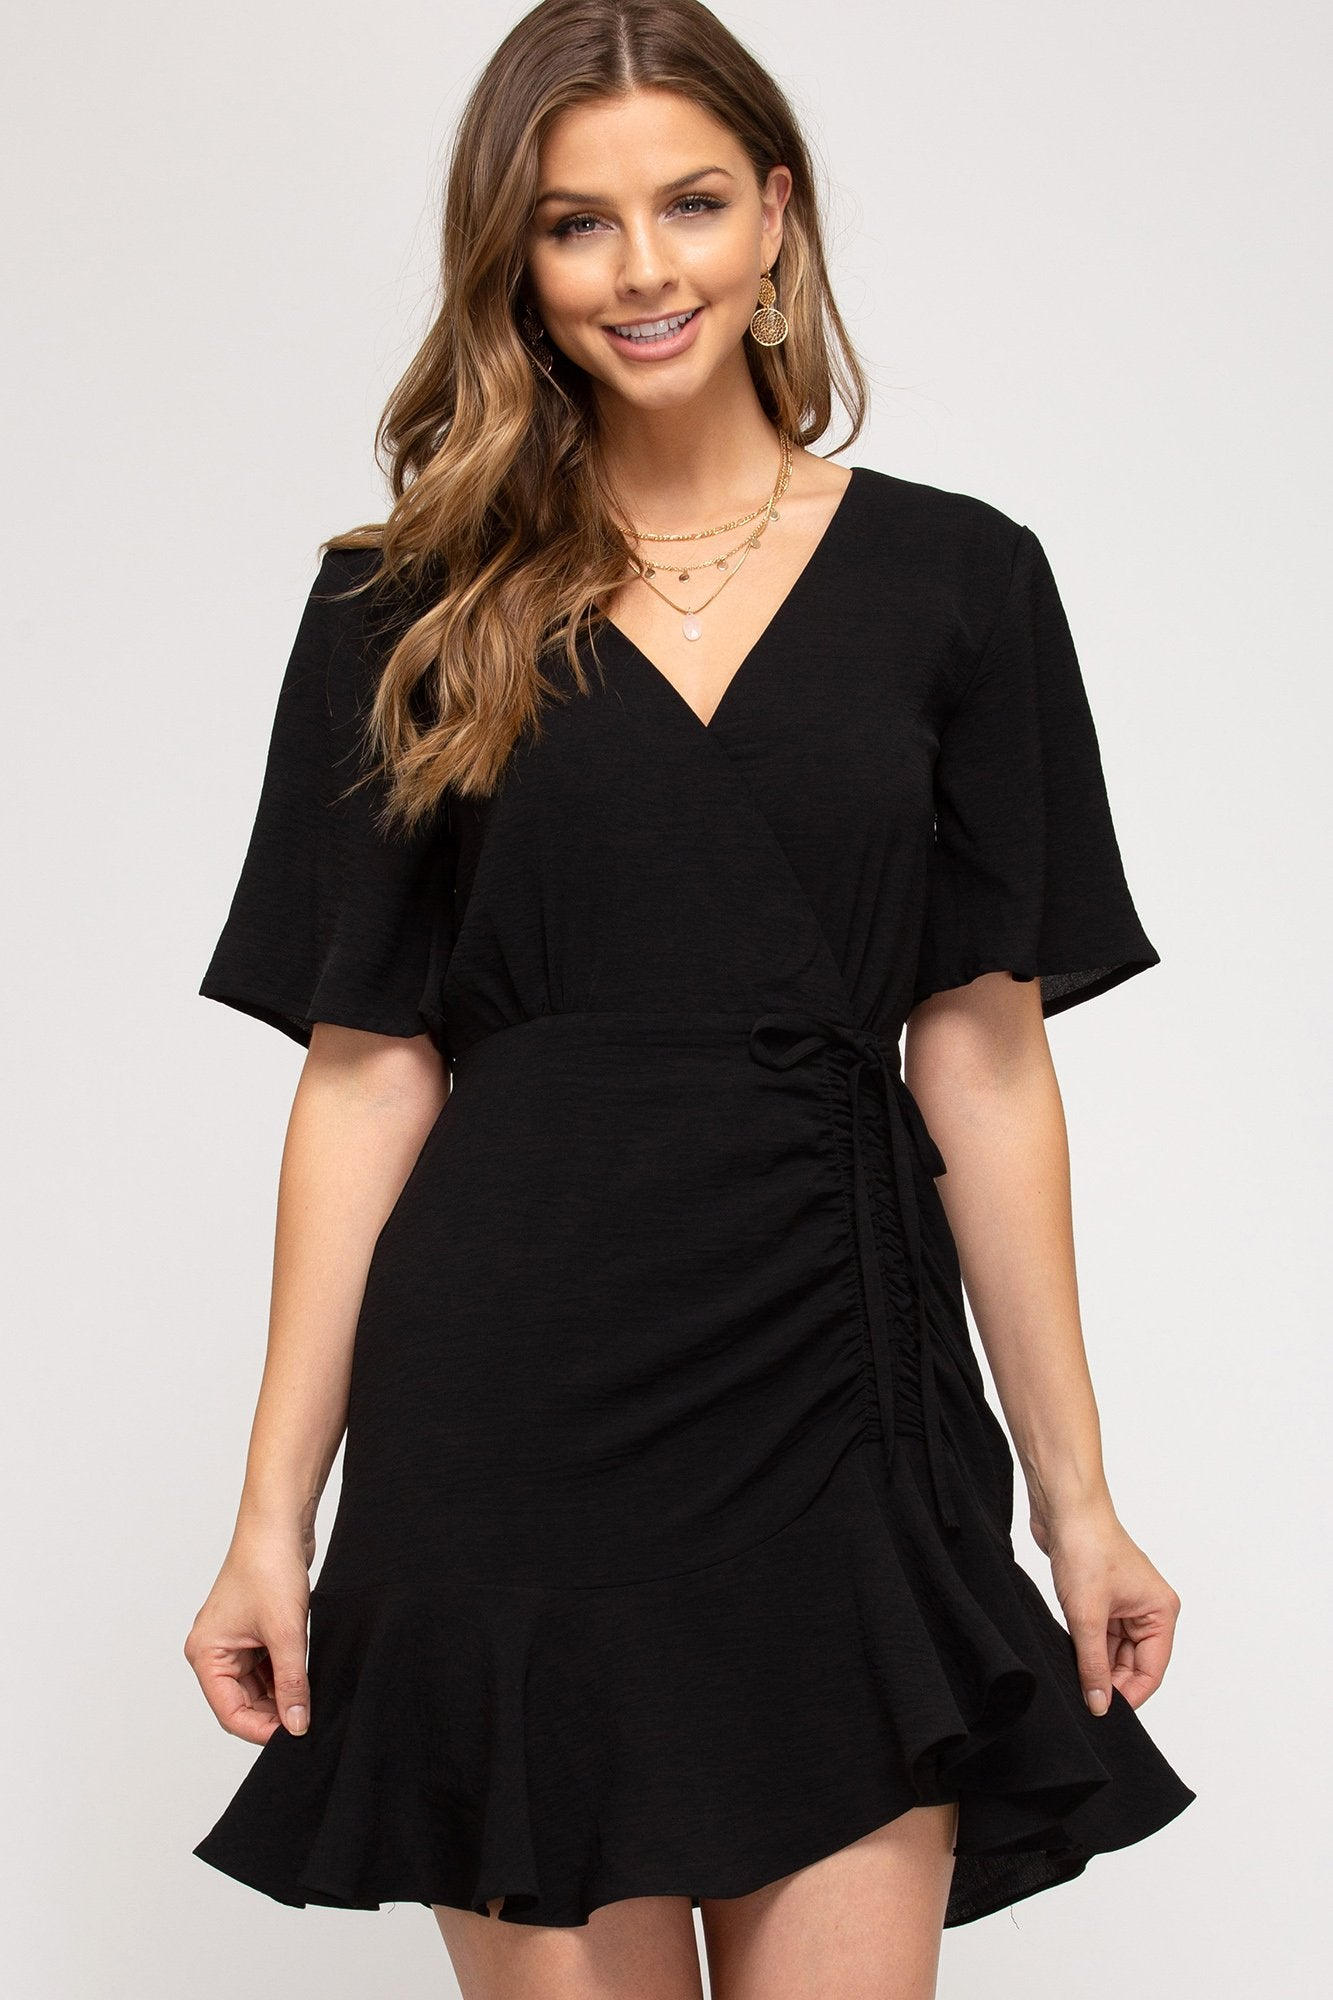 SHE AND SKY Women's Dress Flutter Short Sleeve Side Rouching Dress || David's Clothing